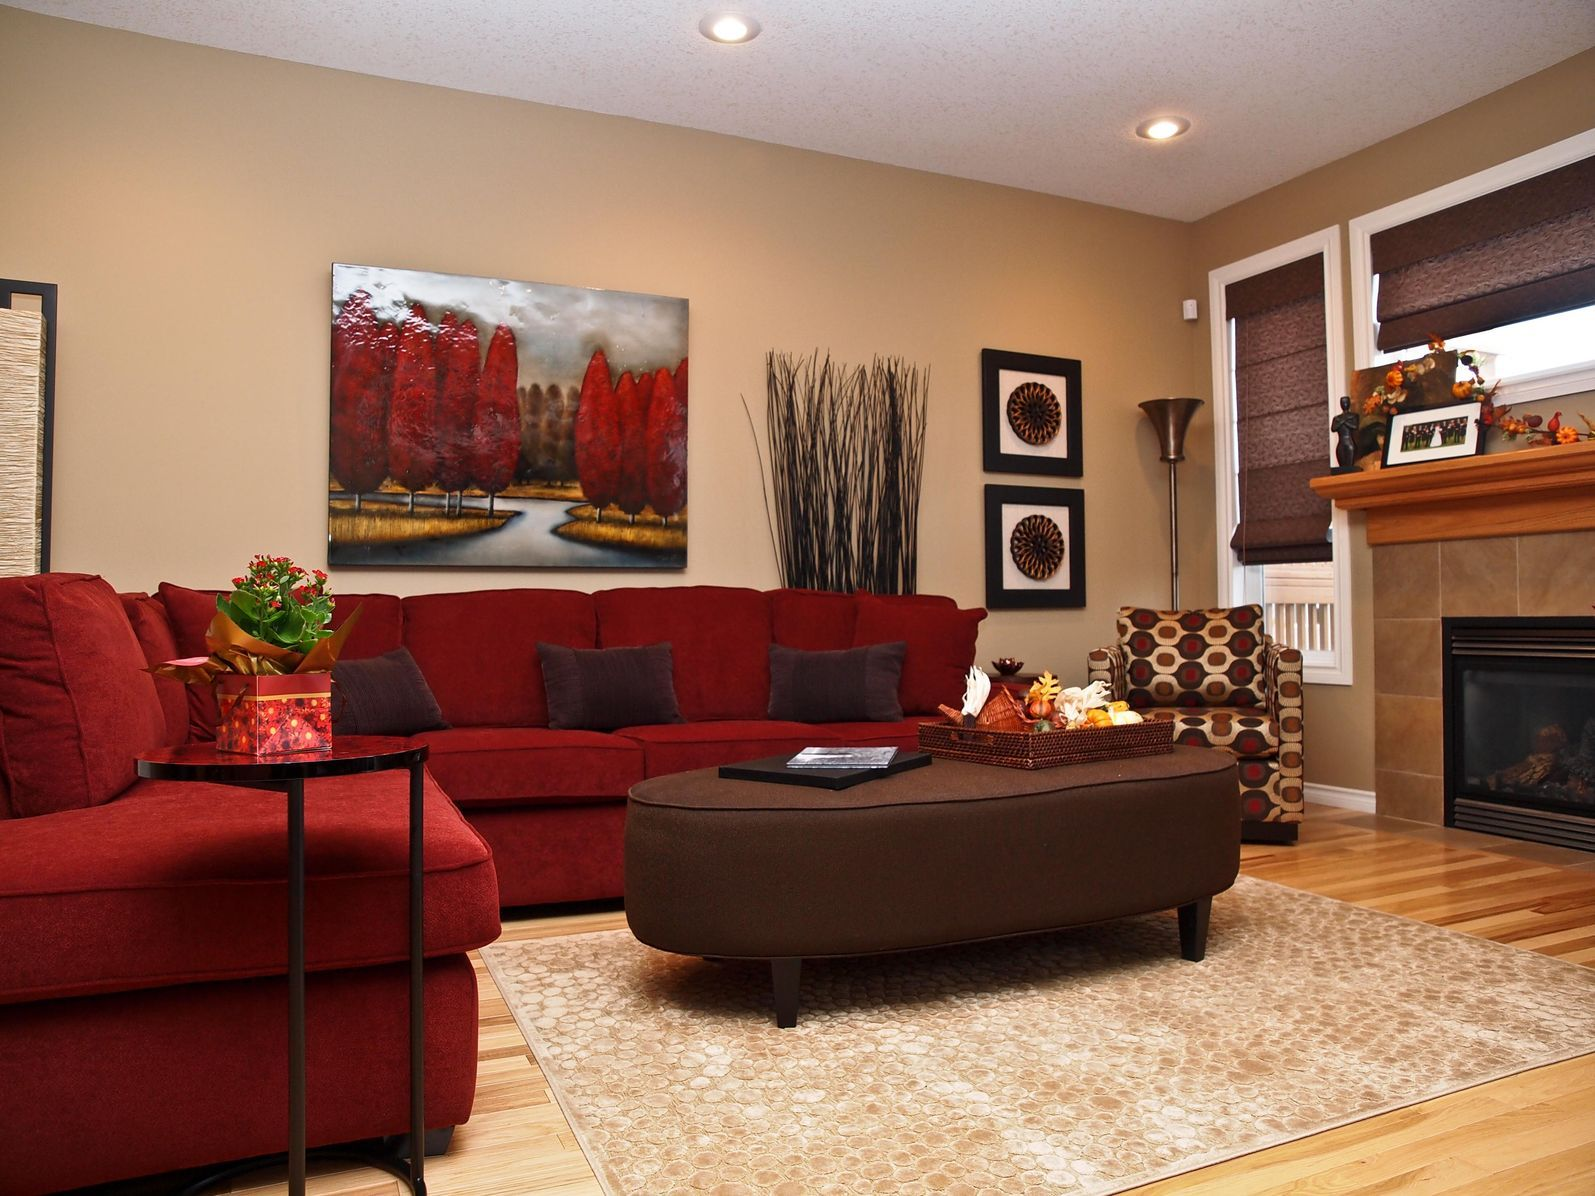 Lush red Lshaped sectional sofa wraps around this plush brownRed and brown living room furniture. Brown Living Room Furniture. Home Design Ideas